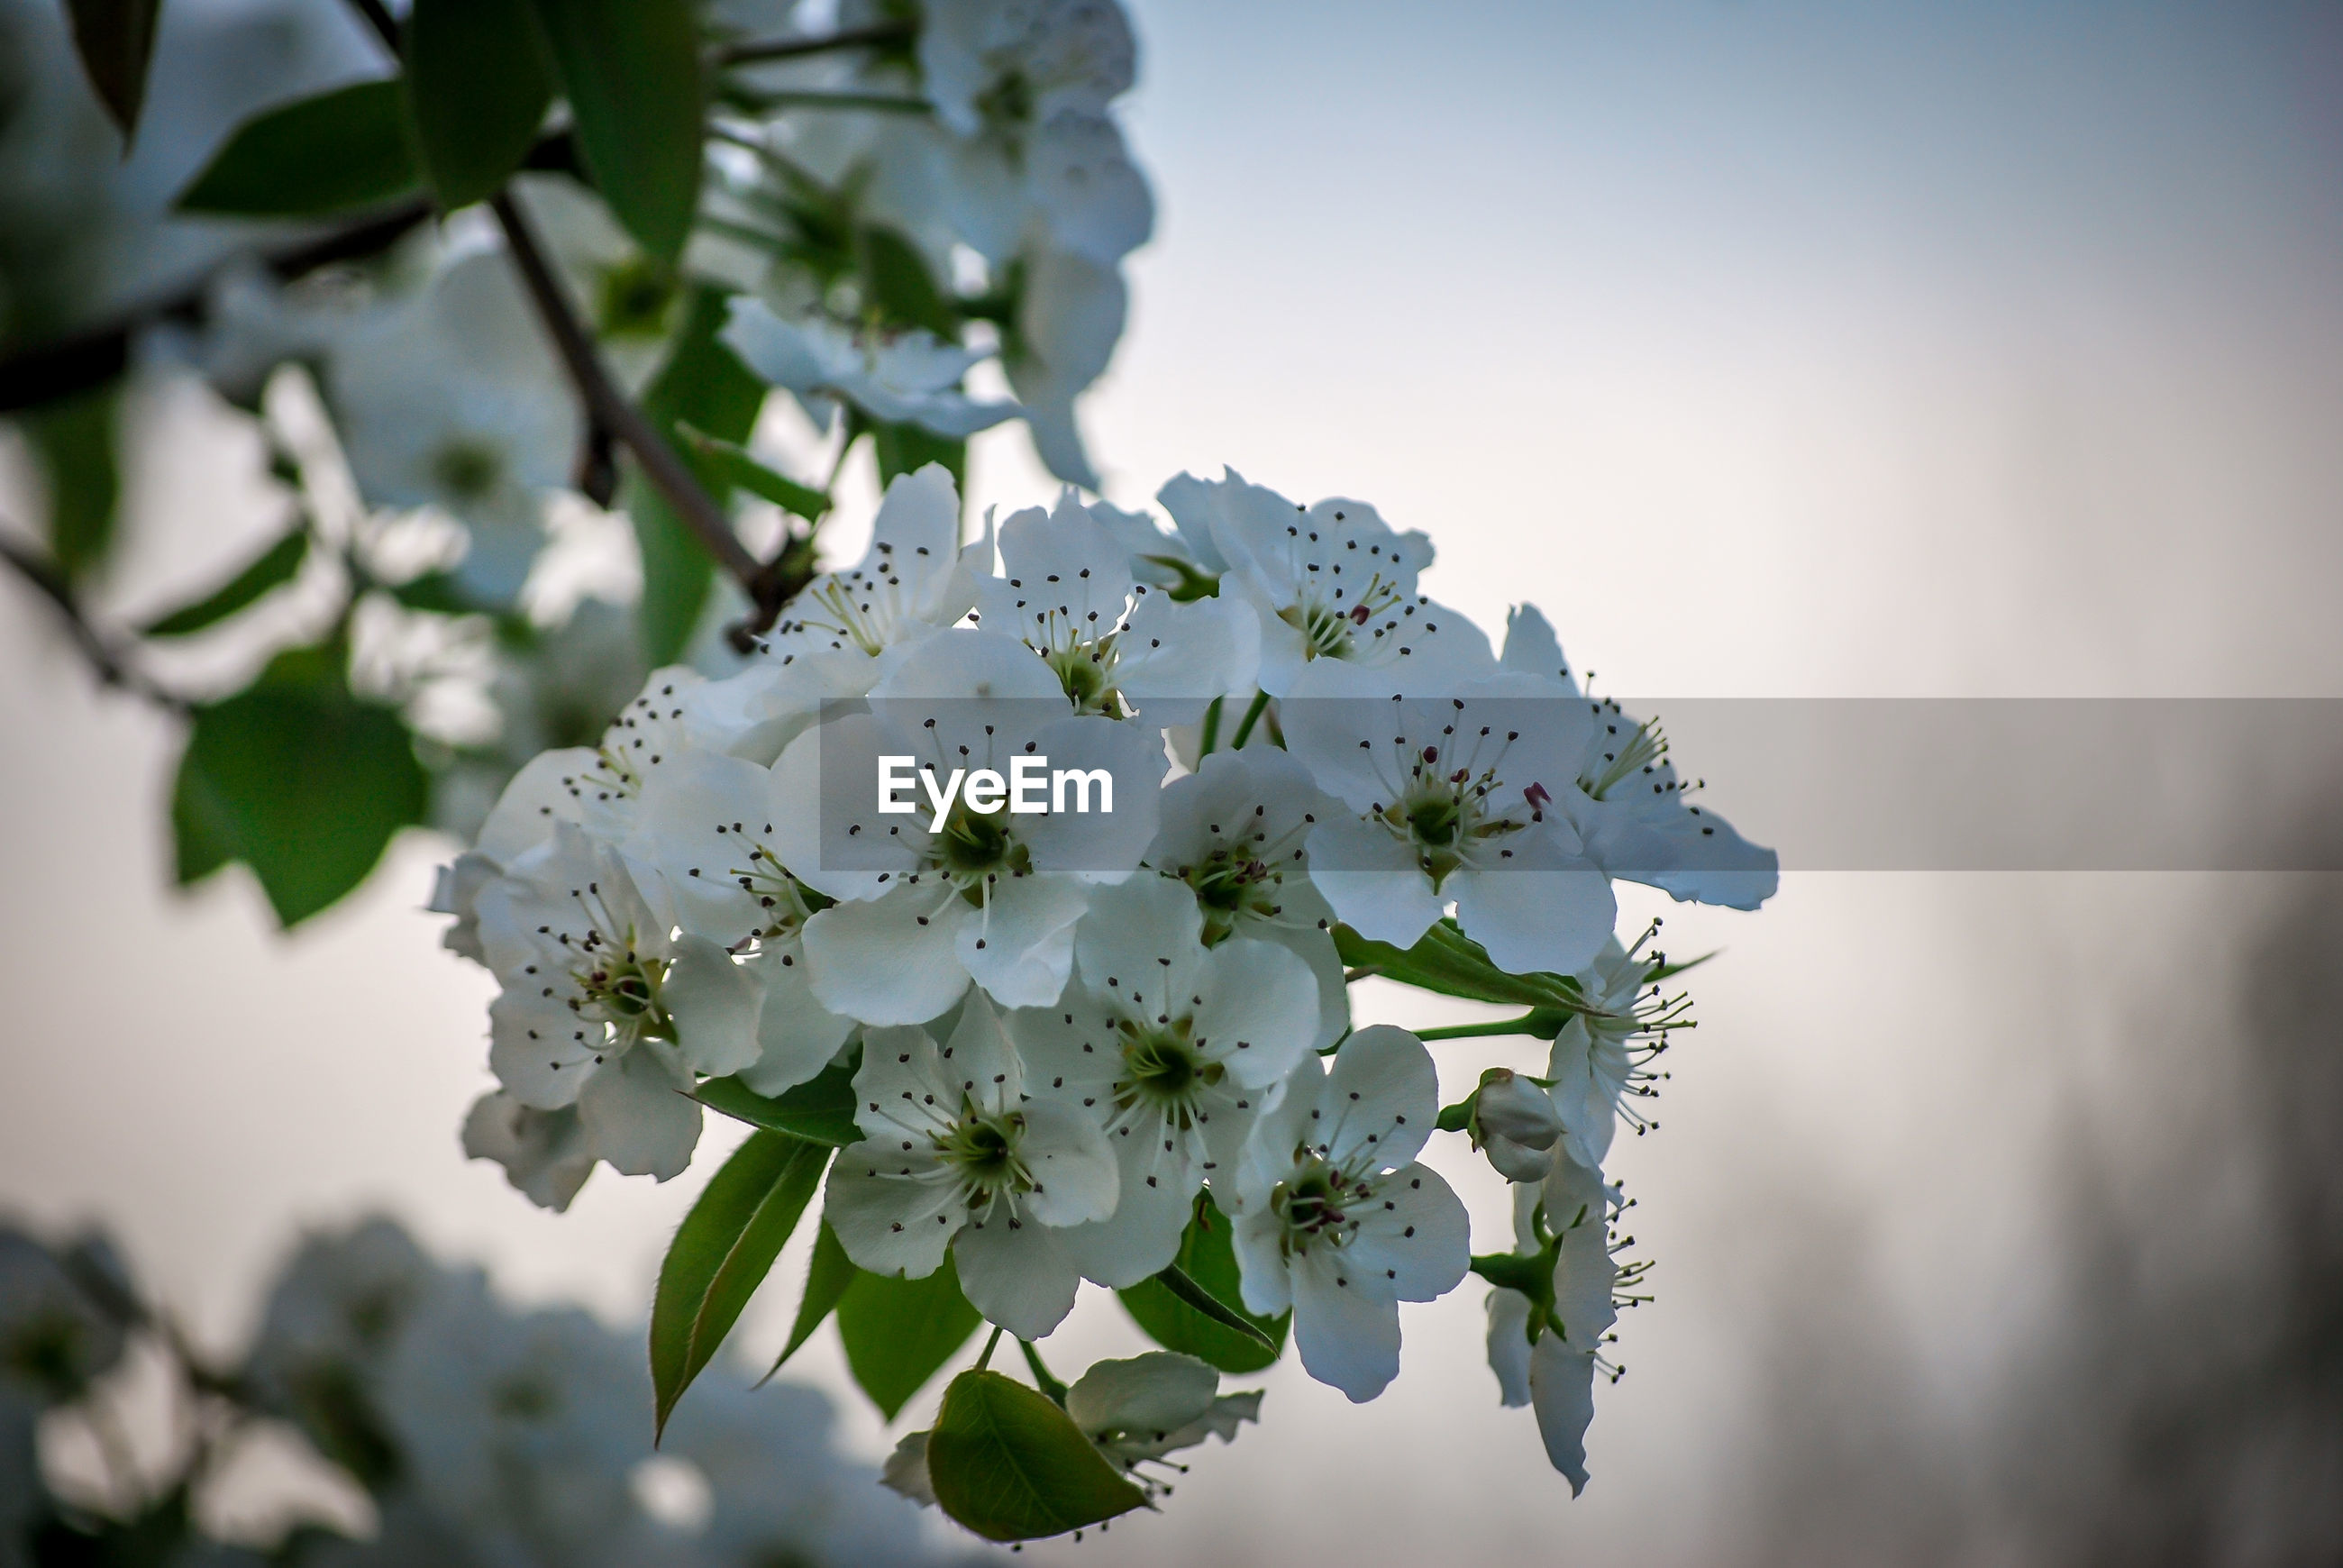 CLOSE-UP OF WHITE FLOWERING PLANT AGAINST TREE